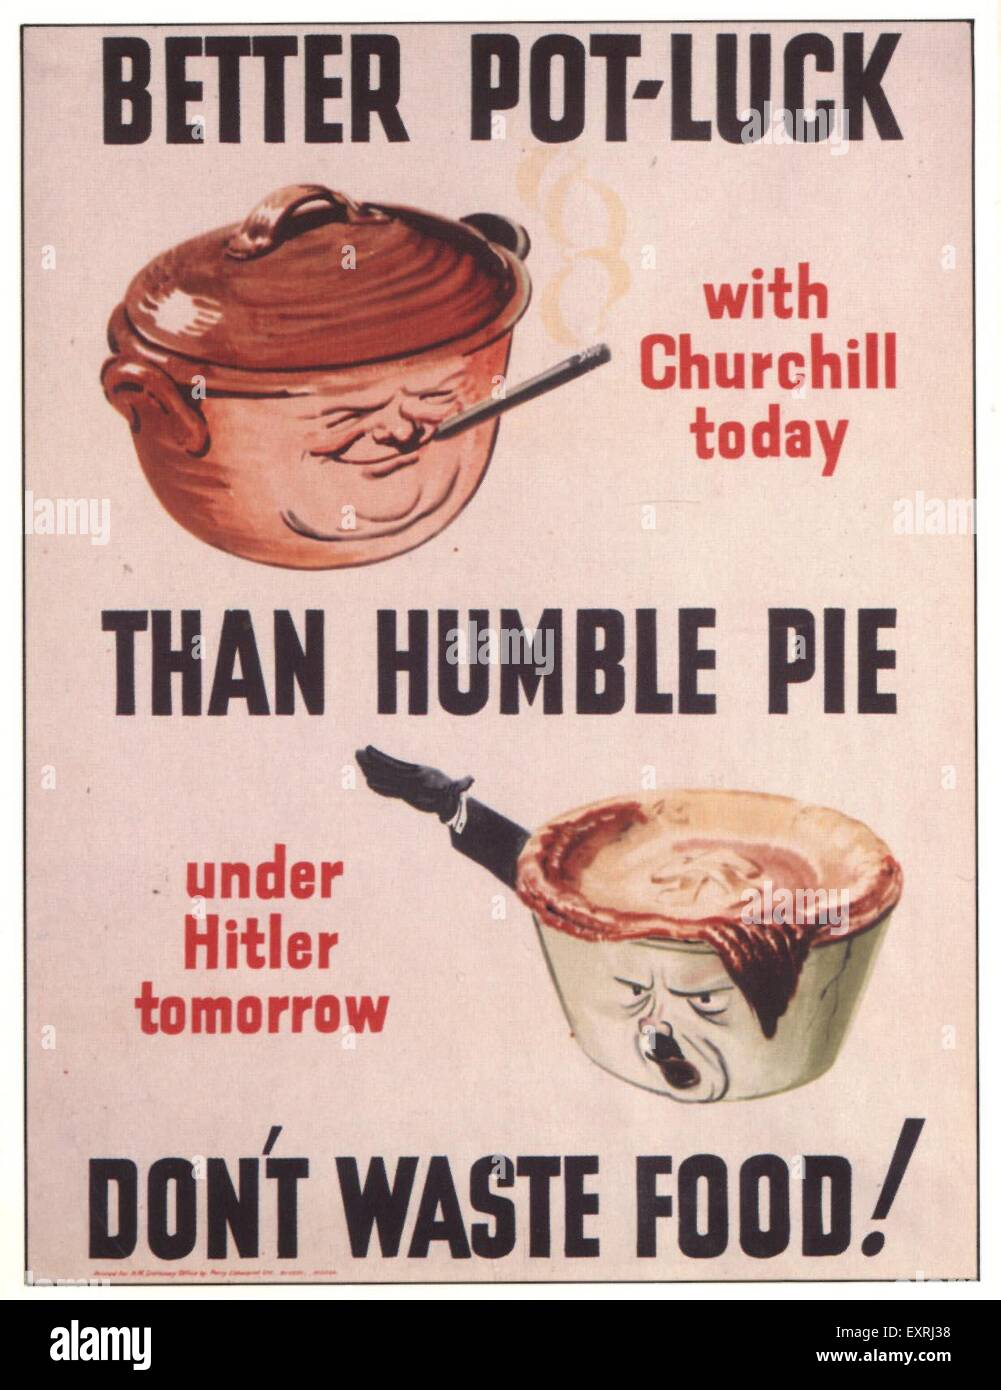 1940s UK Don't Waste Food Poster - Stock Image